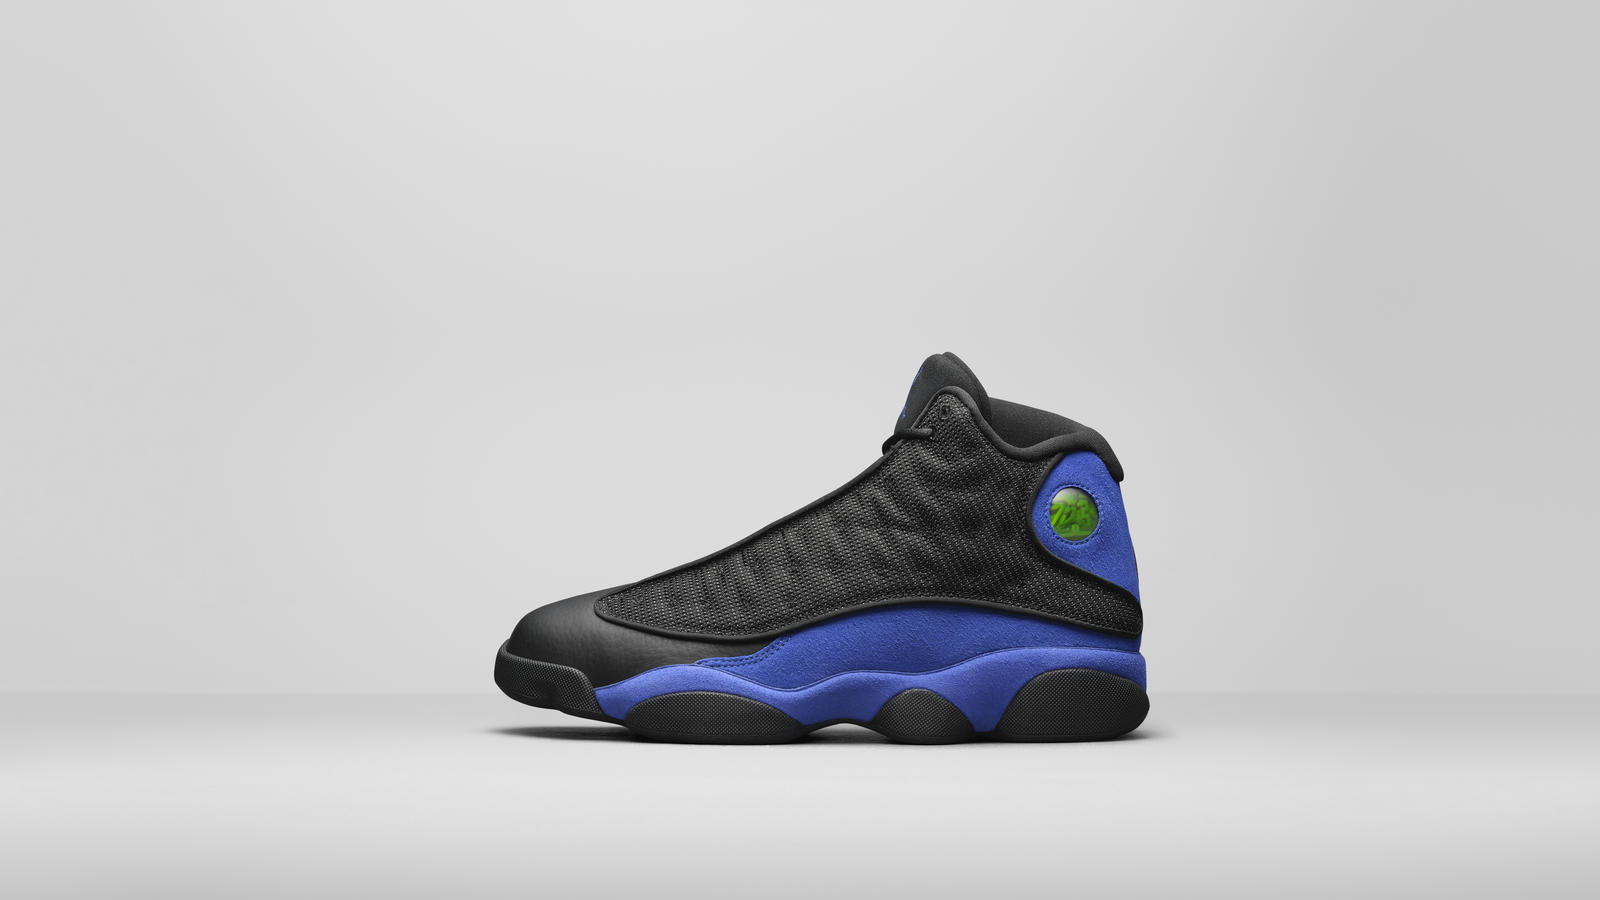 Jordan Brand Holiday 2020 Retro Releases 1